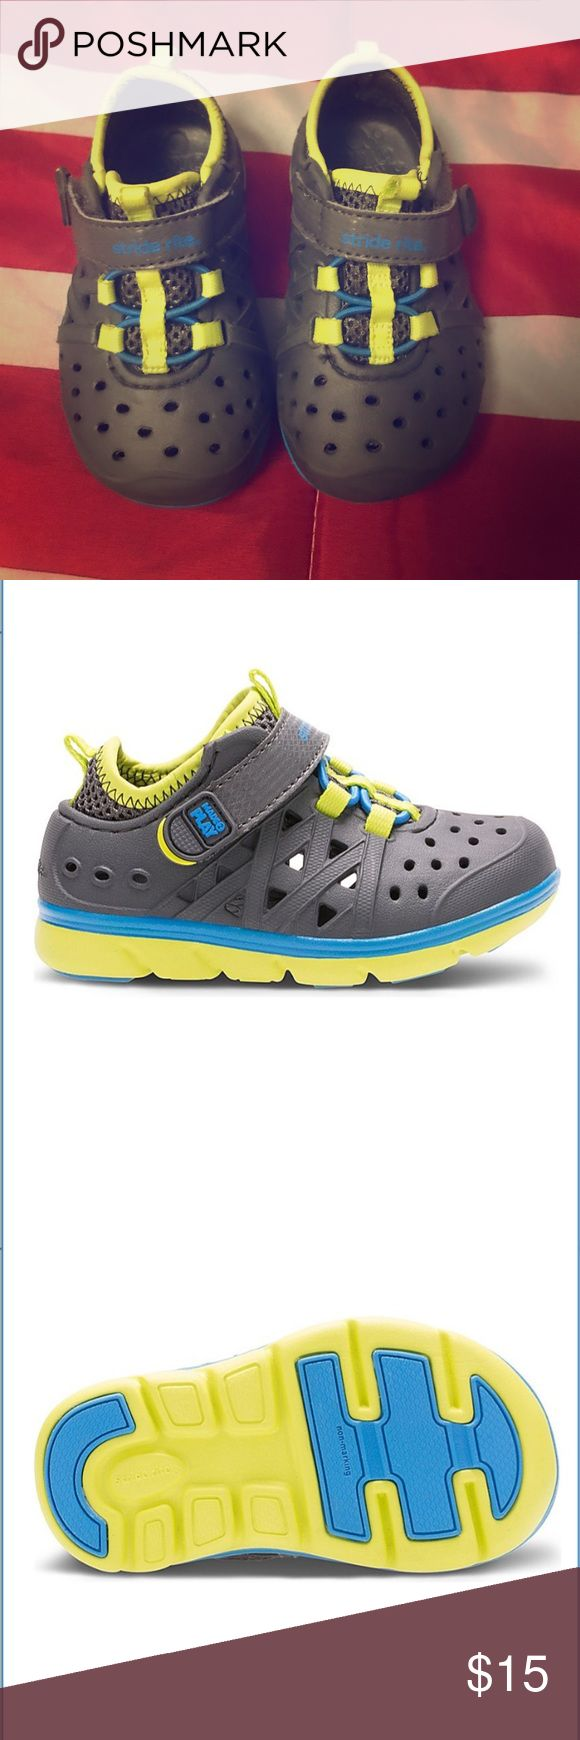 Stride ride. made2play phibian sneaker sandal Used! Perfect conditions! Stride Rite Shoes Sneakers